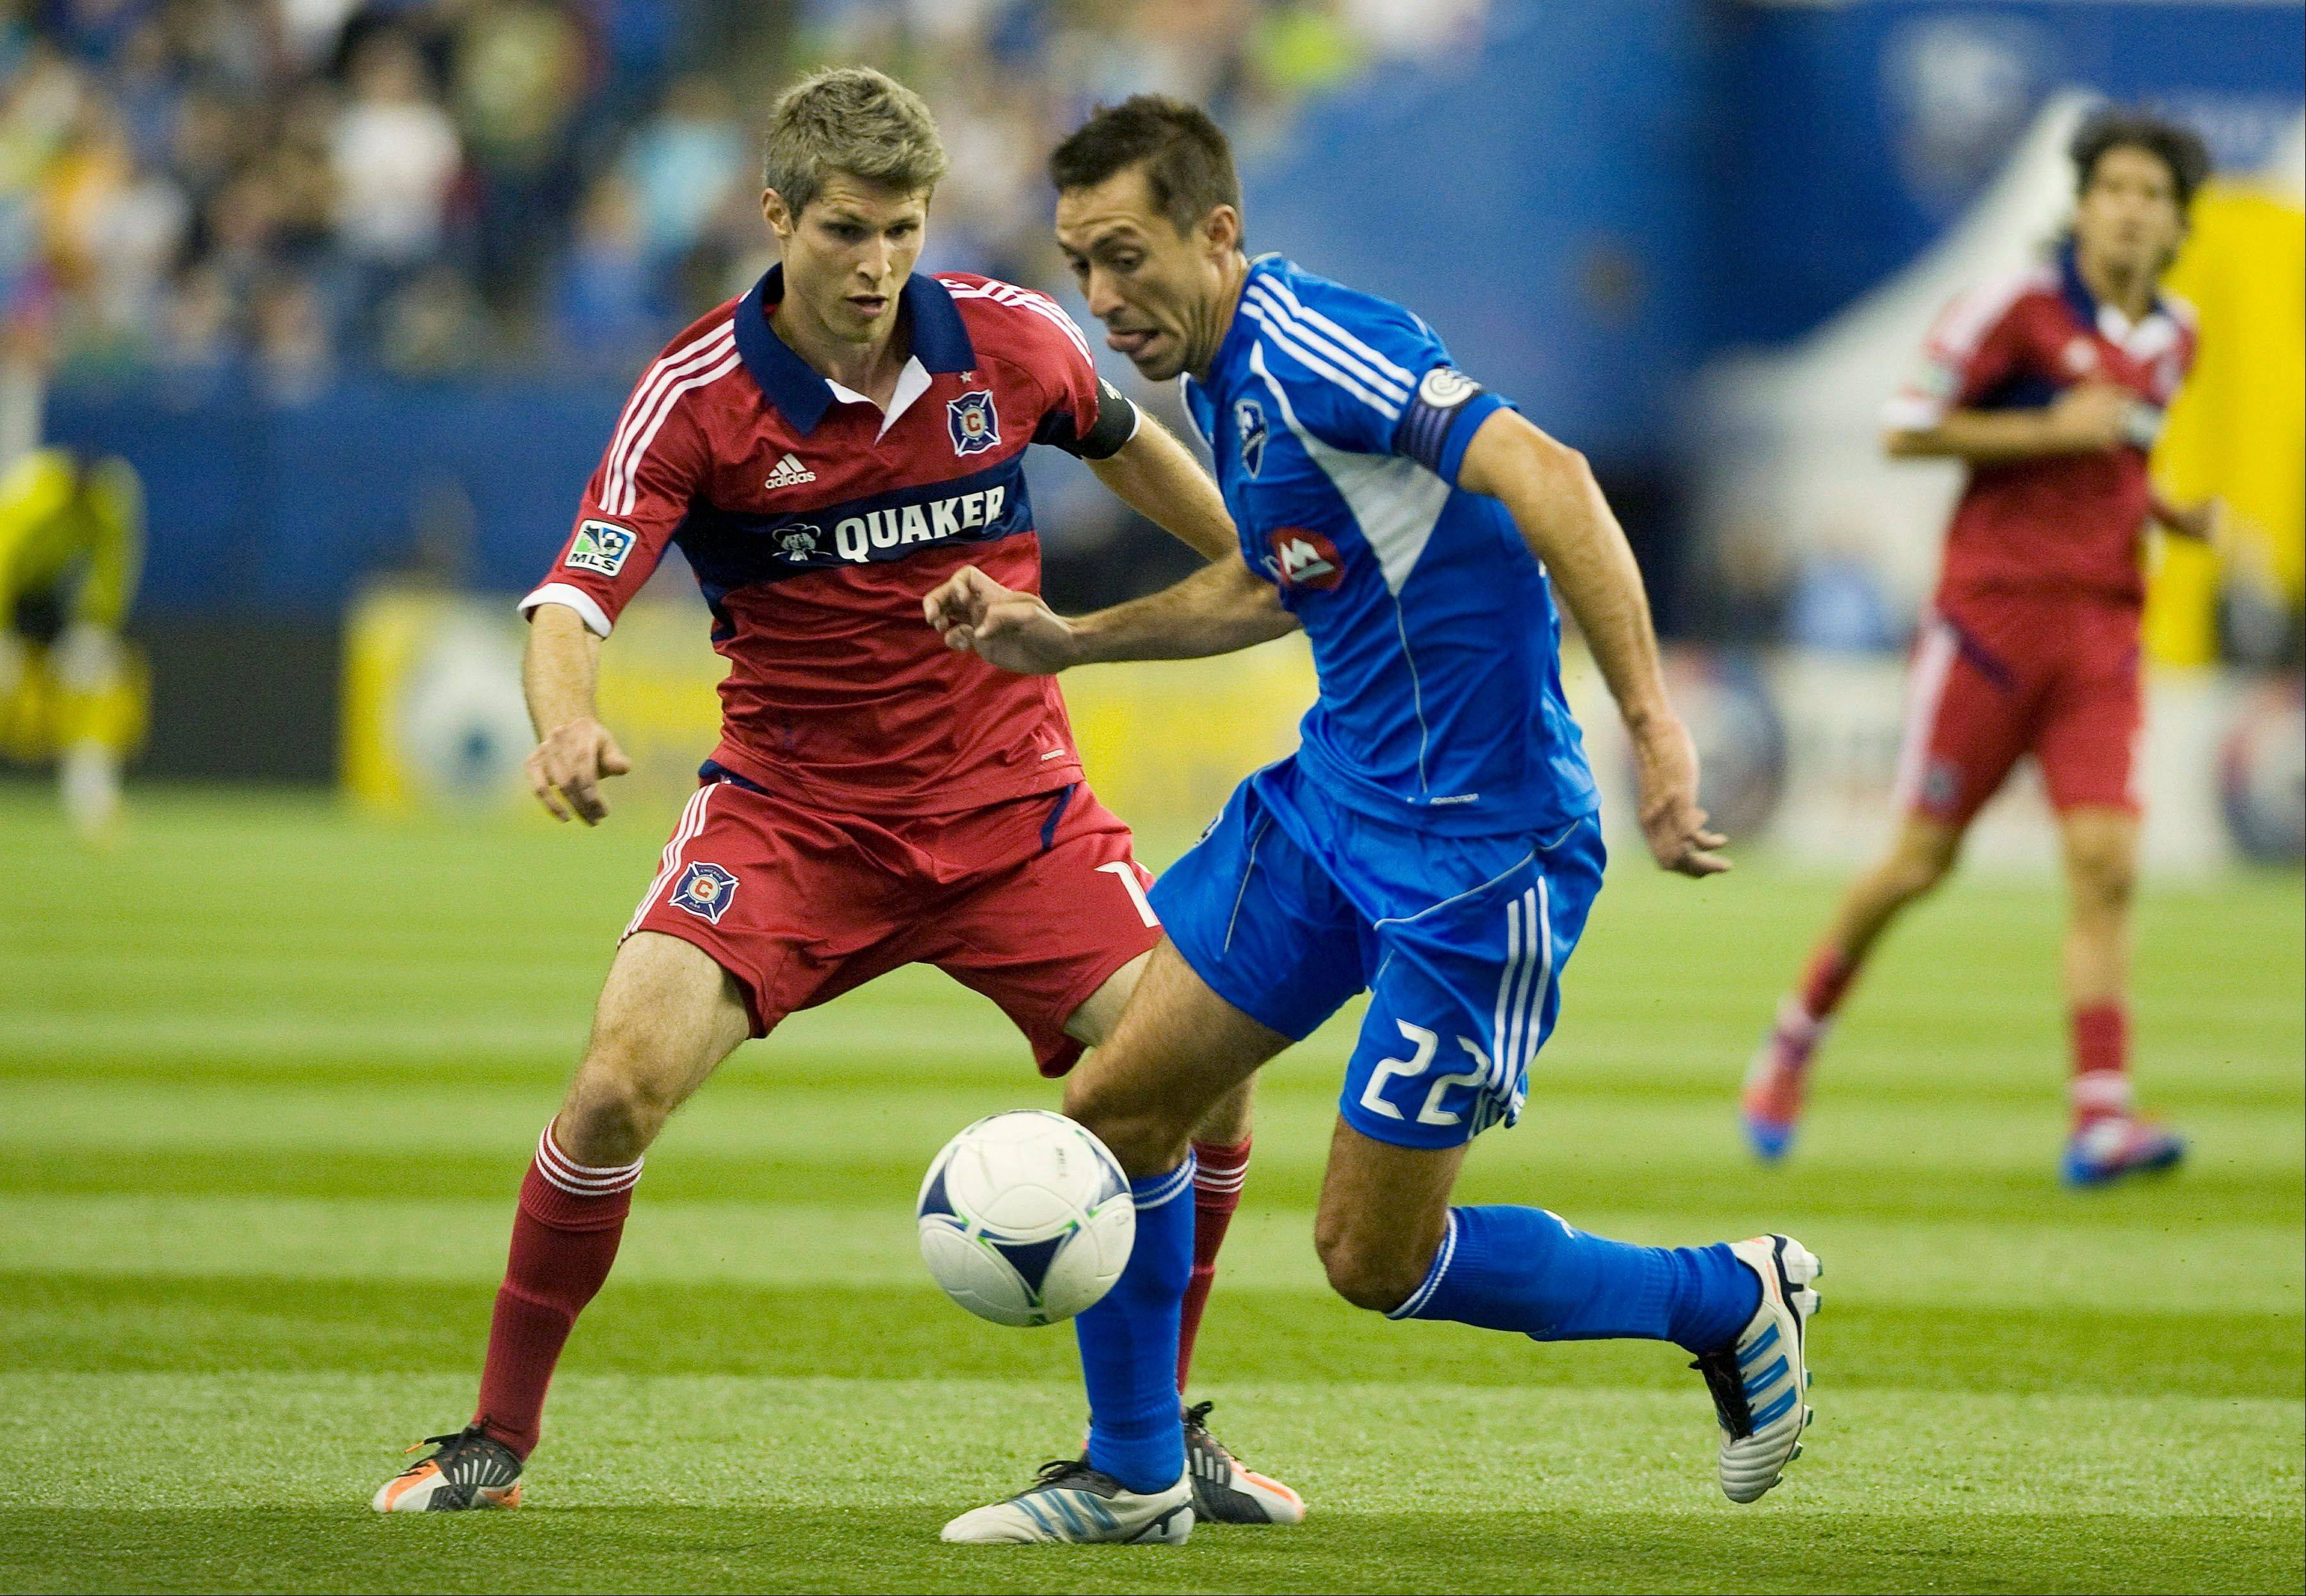 Montreal Impact's Davy Arnaud (22) shields the ball from Chicago Fire's Logan Pause during first half MLS soccer action in Montreal, Saturday, March 17, 2012.